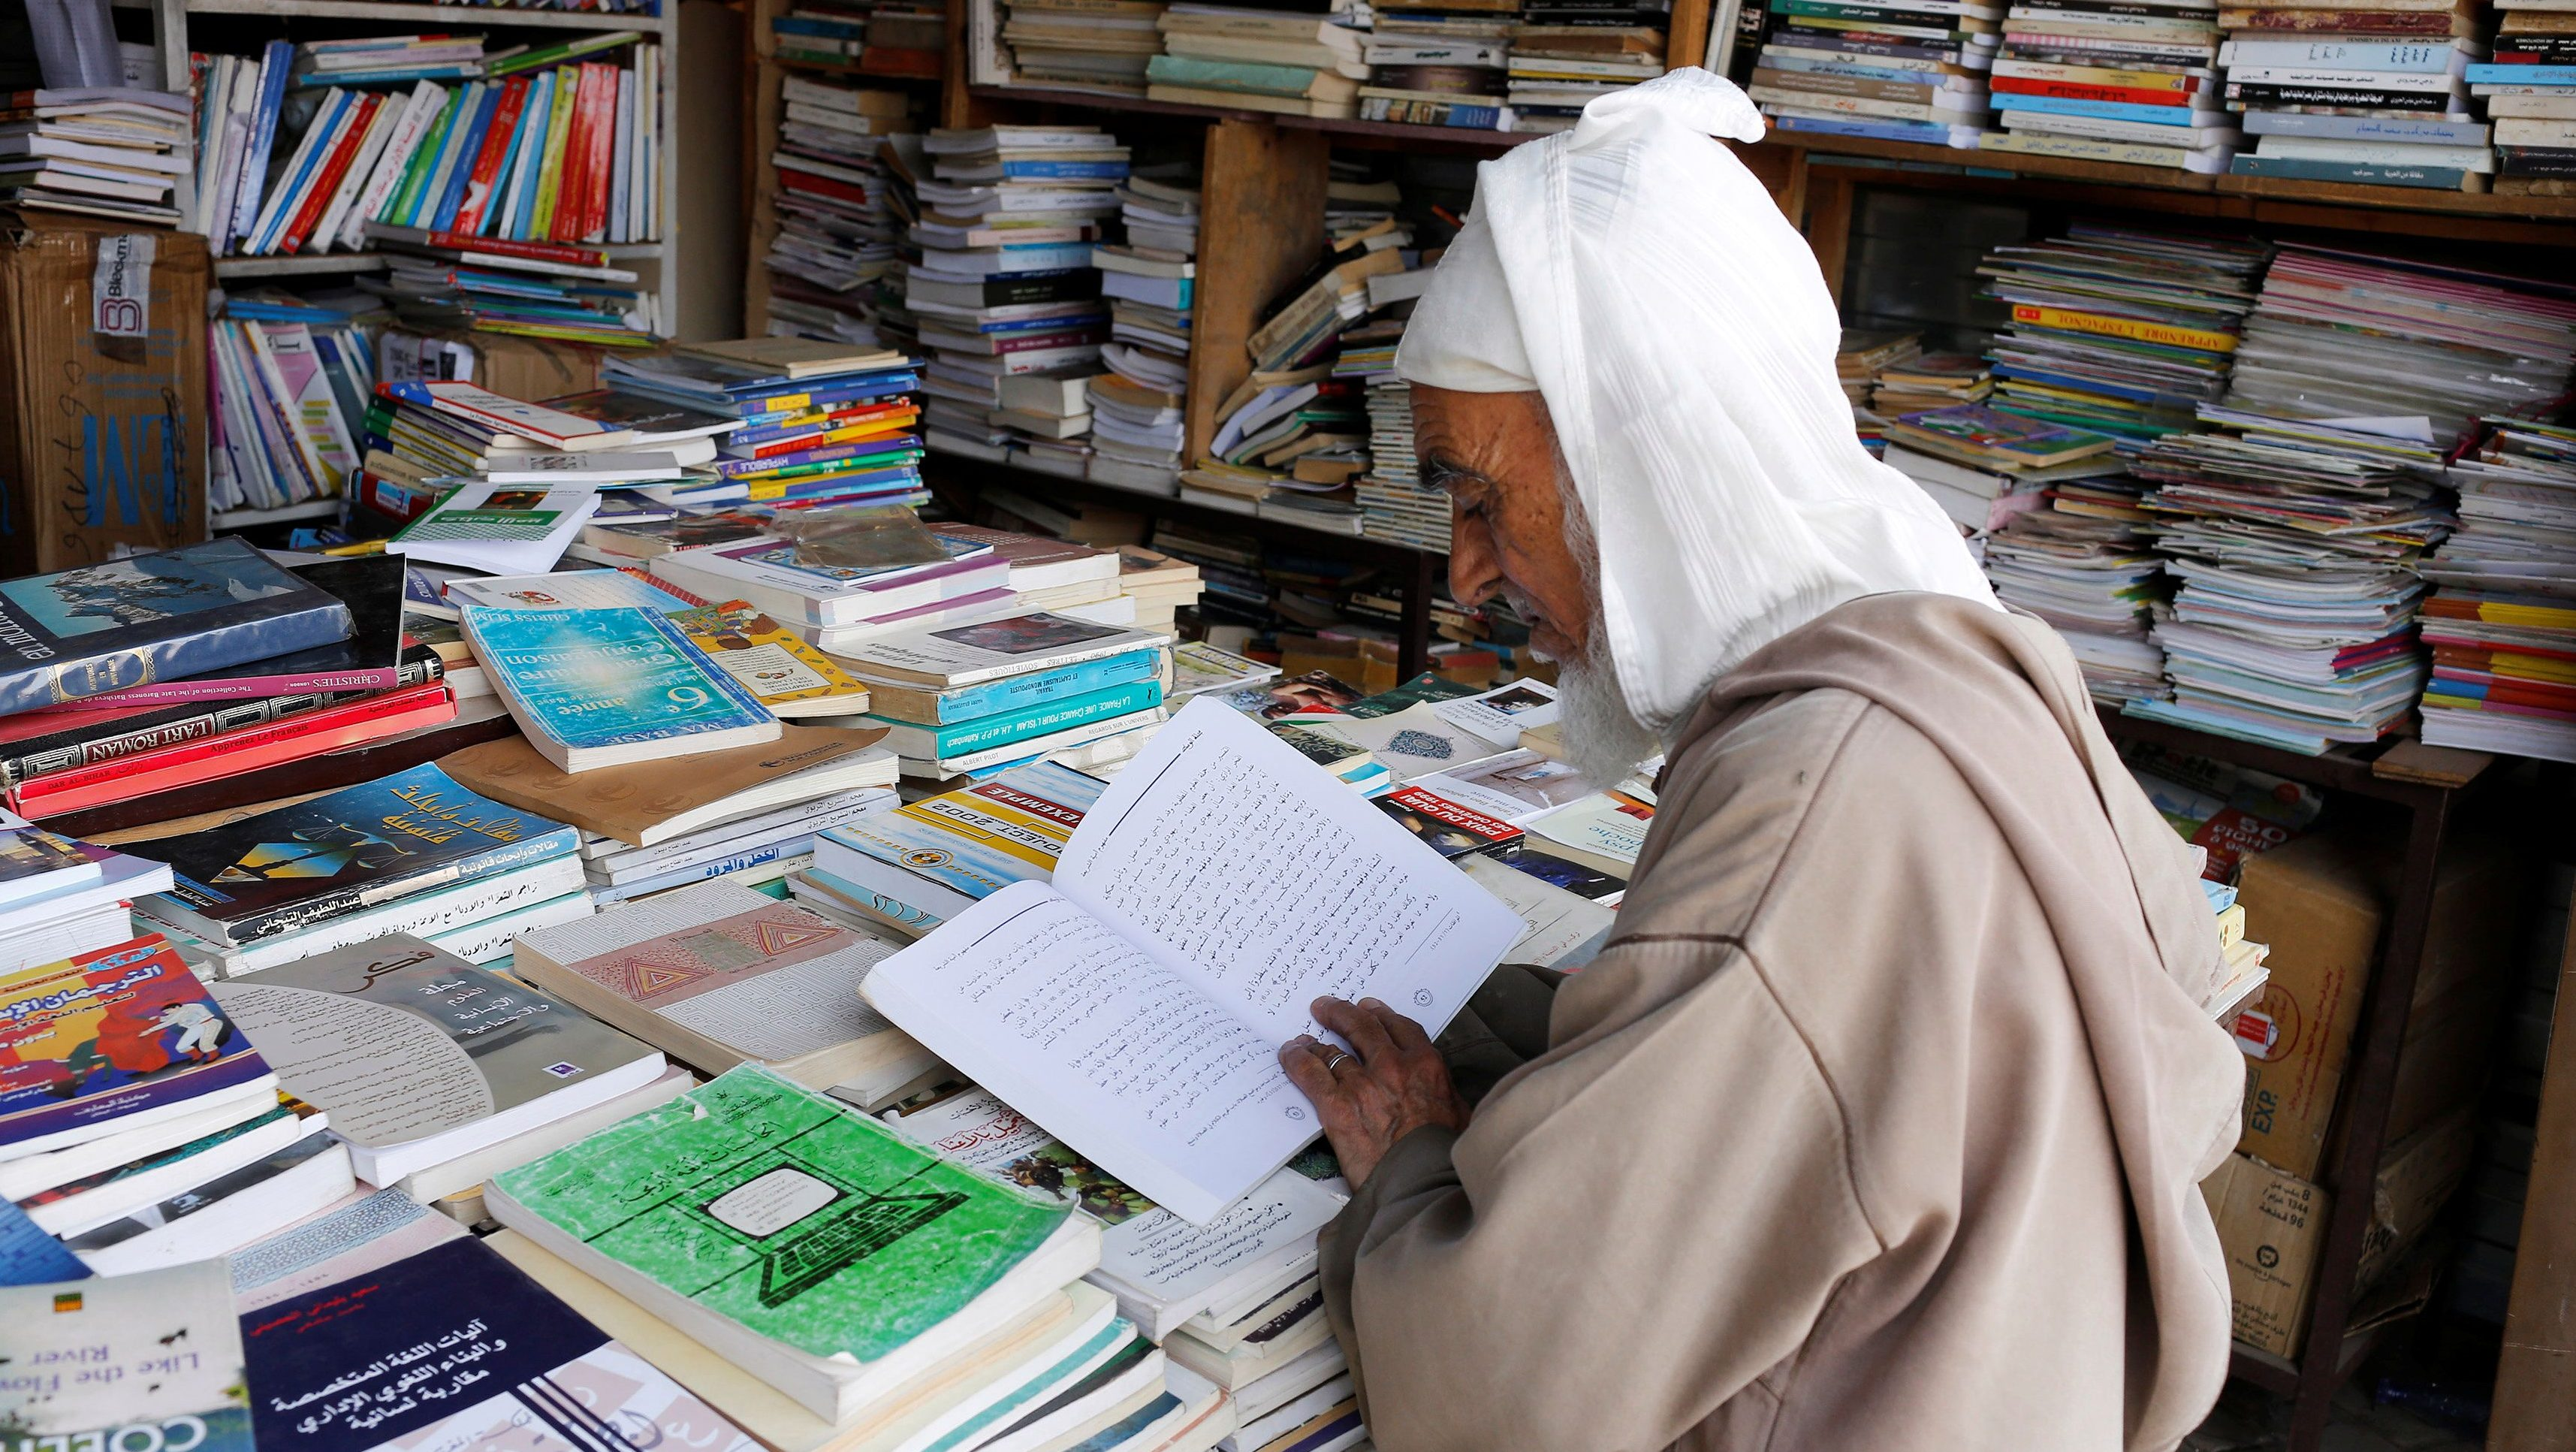 An elderly man reads a book in a bookshop in Bab Doukkala in the city of Marrakech, Morocco May 13, 2017. Picture taken May 13, 2017.